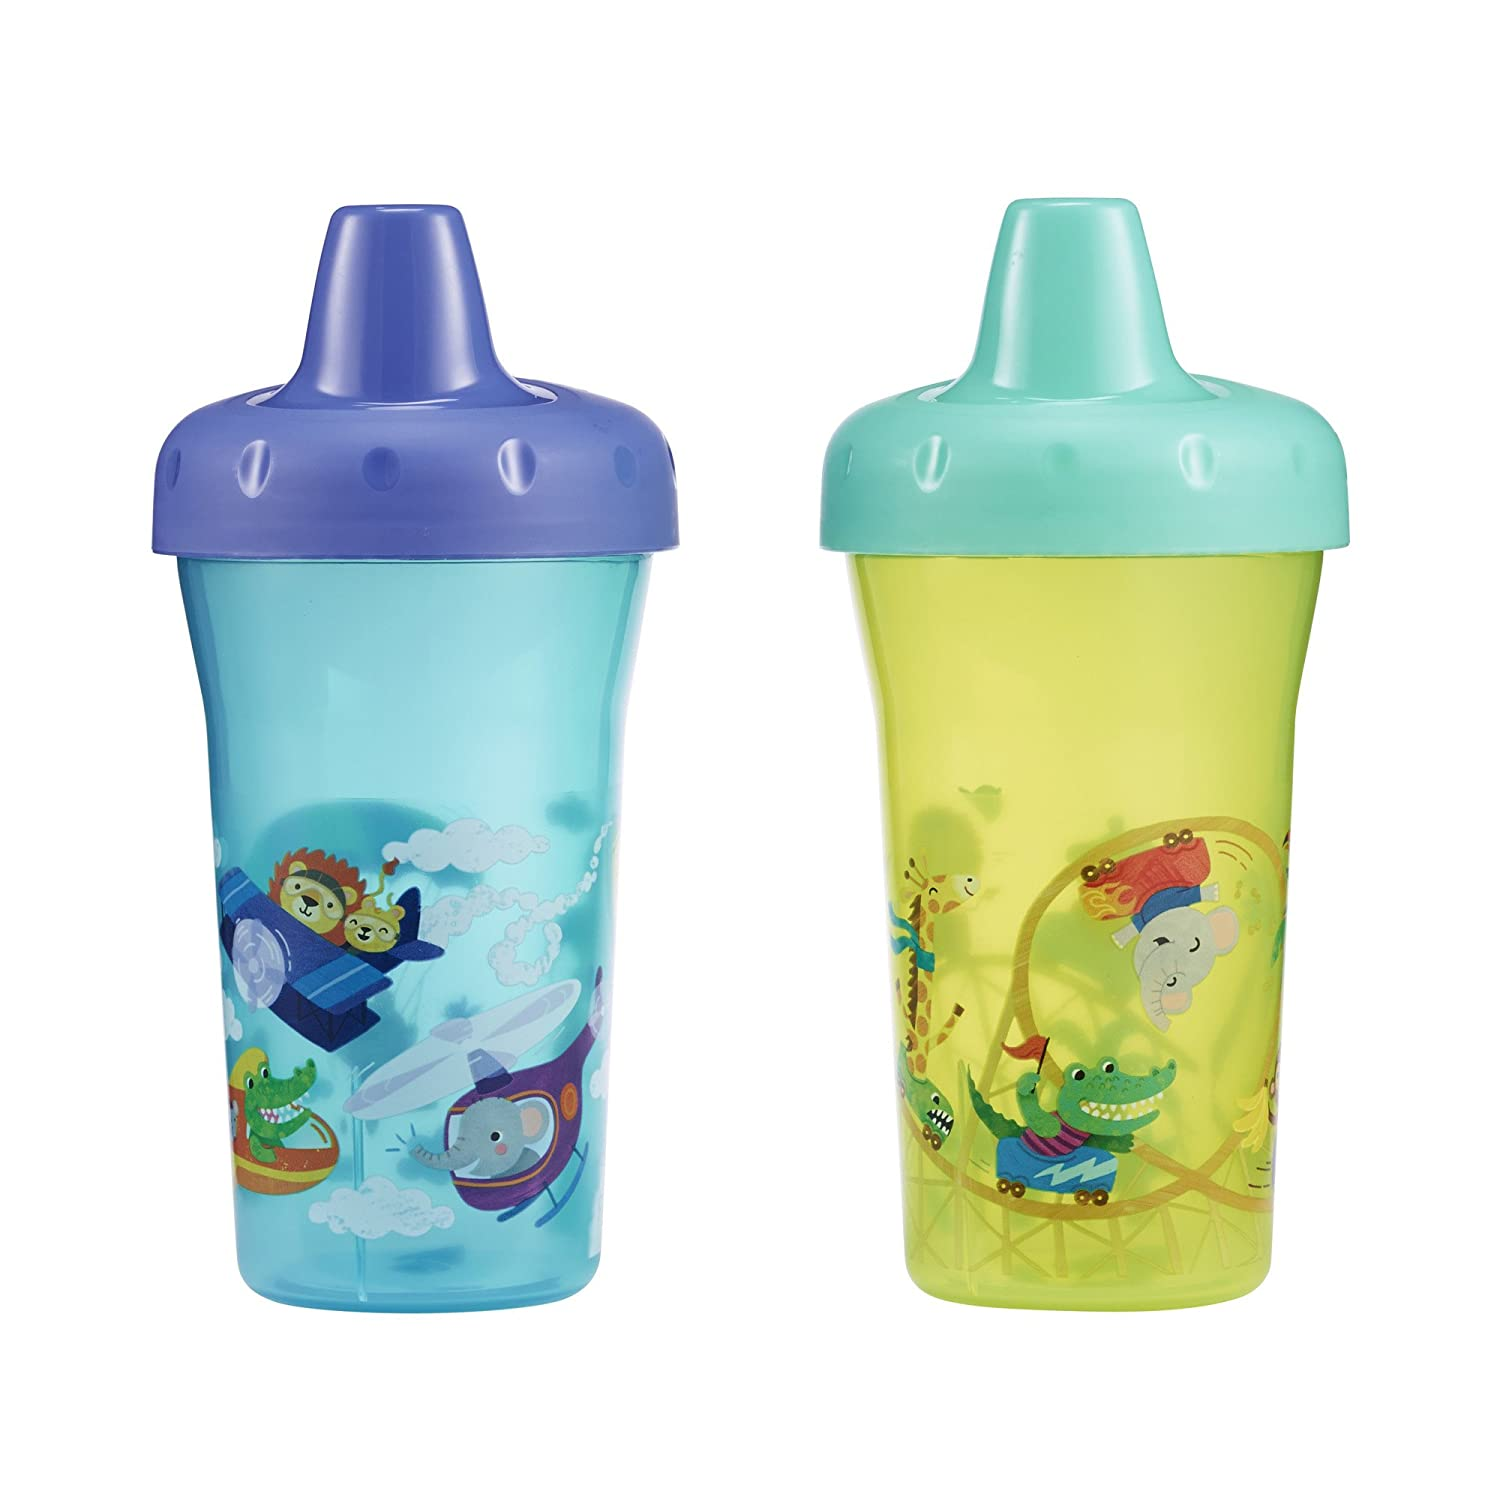 The First Years Simple Sippy Cup - 9oz, 2 pack, Orange and Green by The First Years   B00R63HSUO